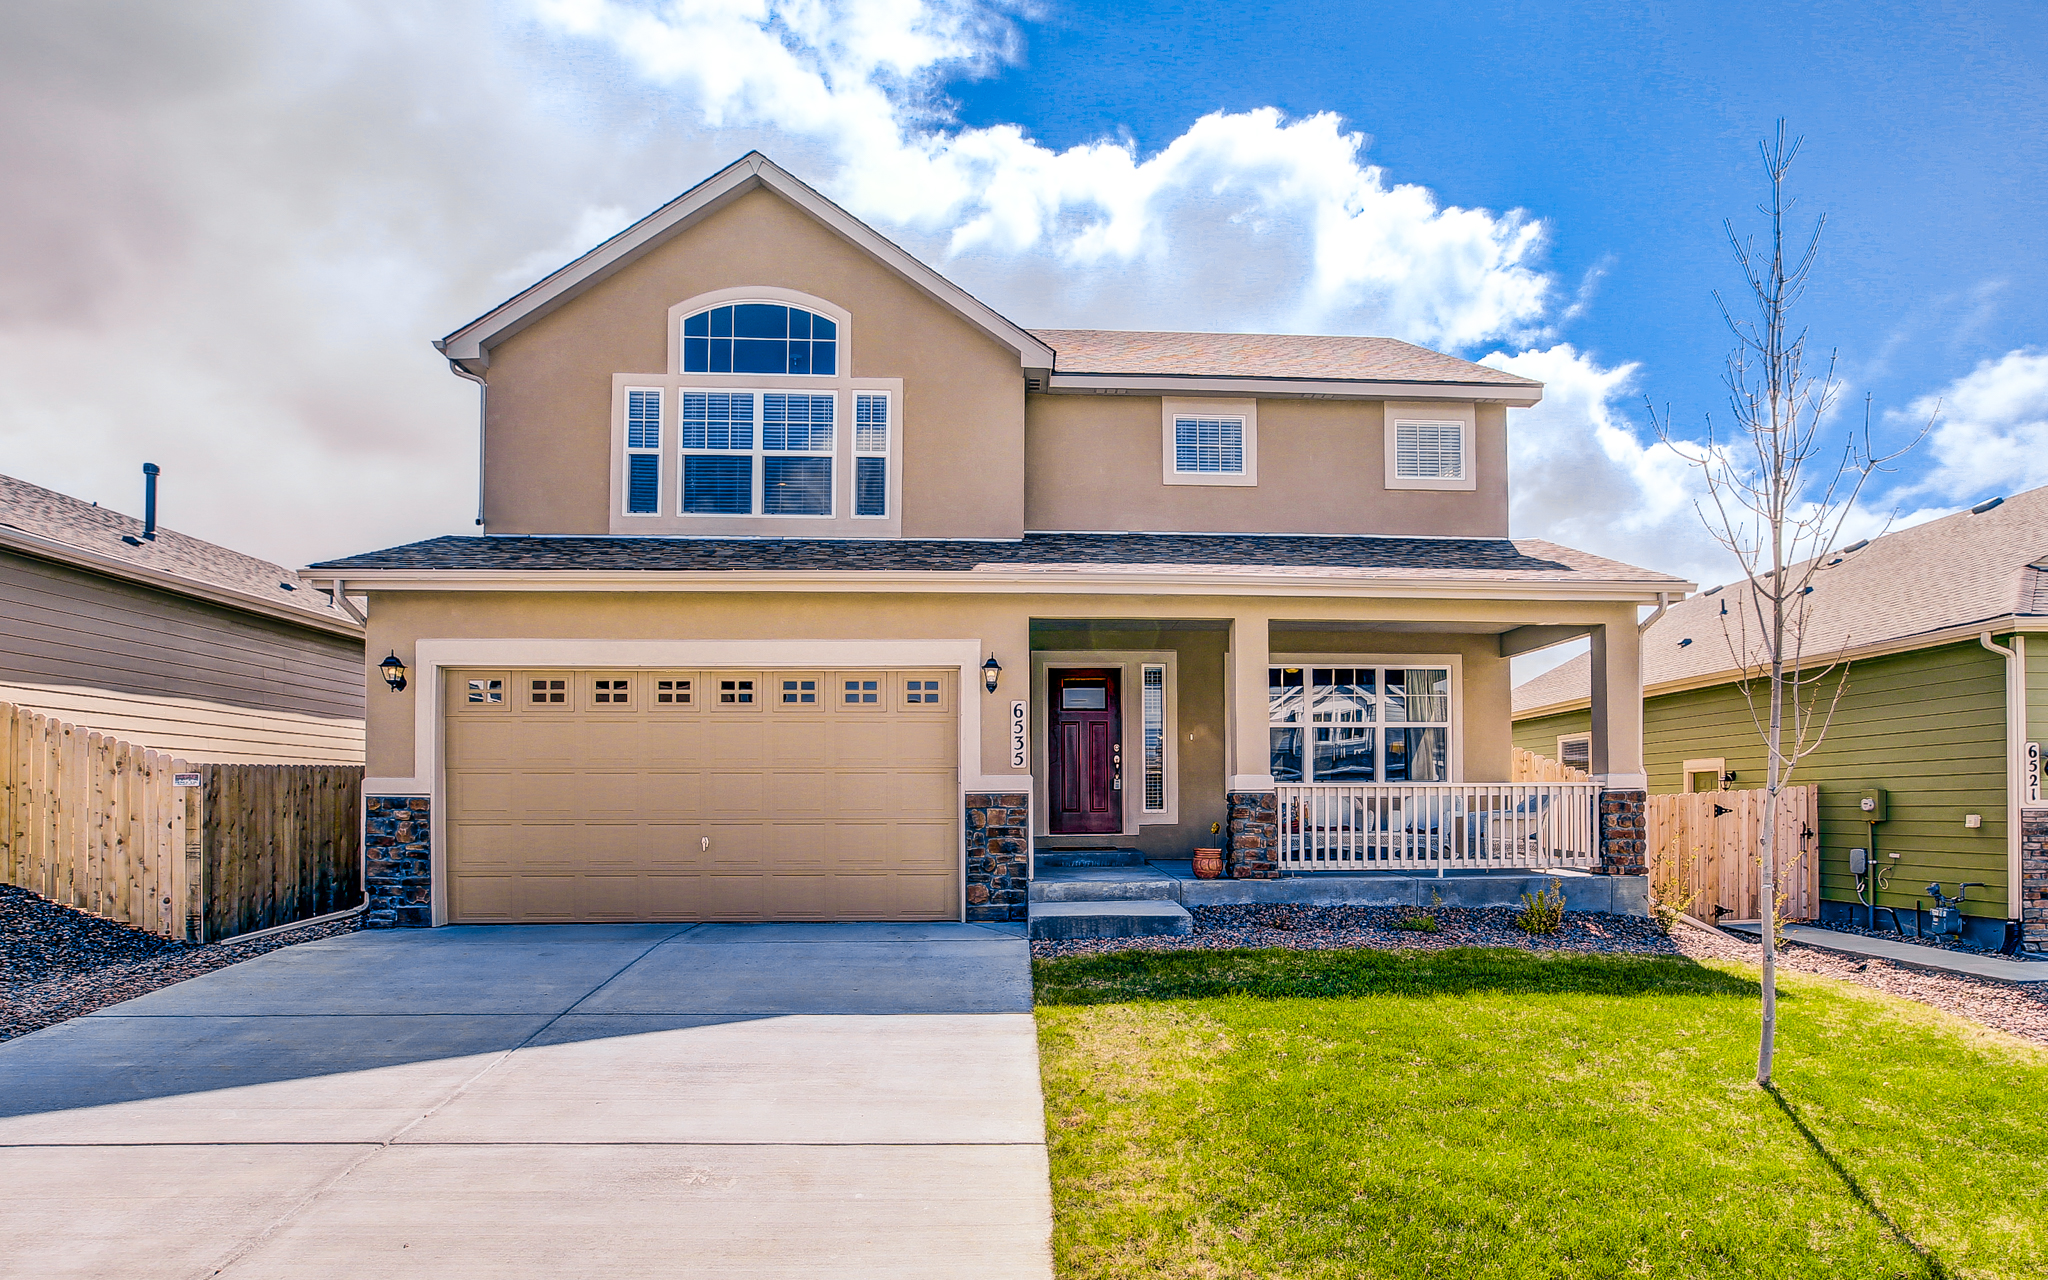 colorado springs real estate and community news